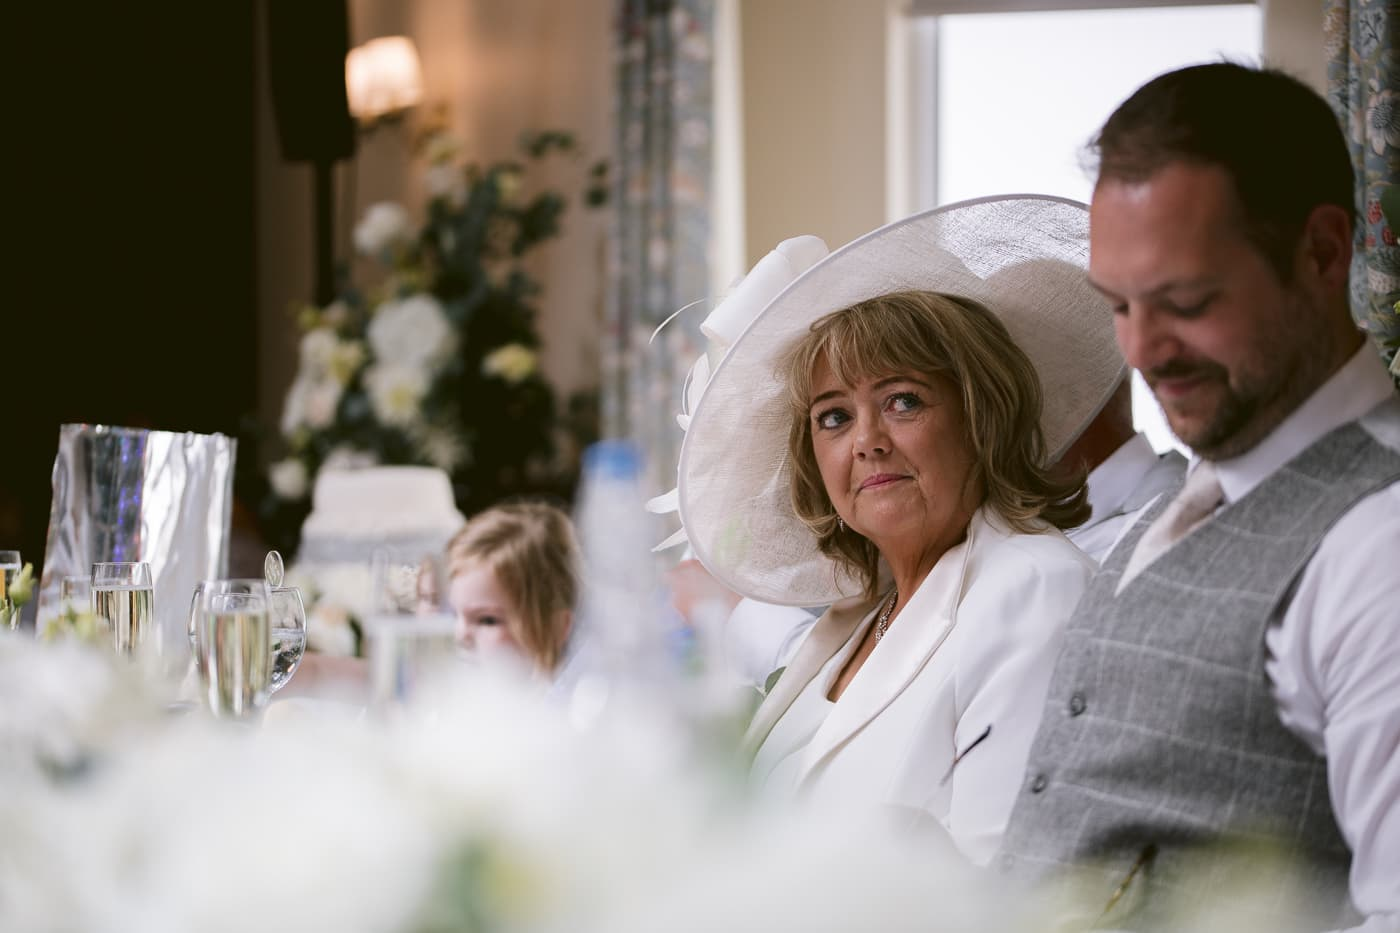 Woman in Big Wedding Hat Looking Forward With Guests in Reception Main Hall Photo Shoot Session